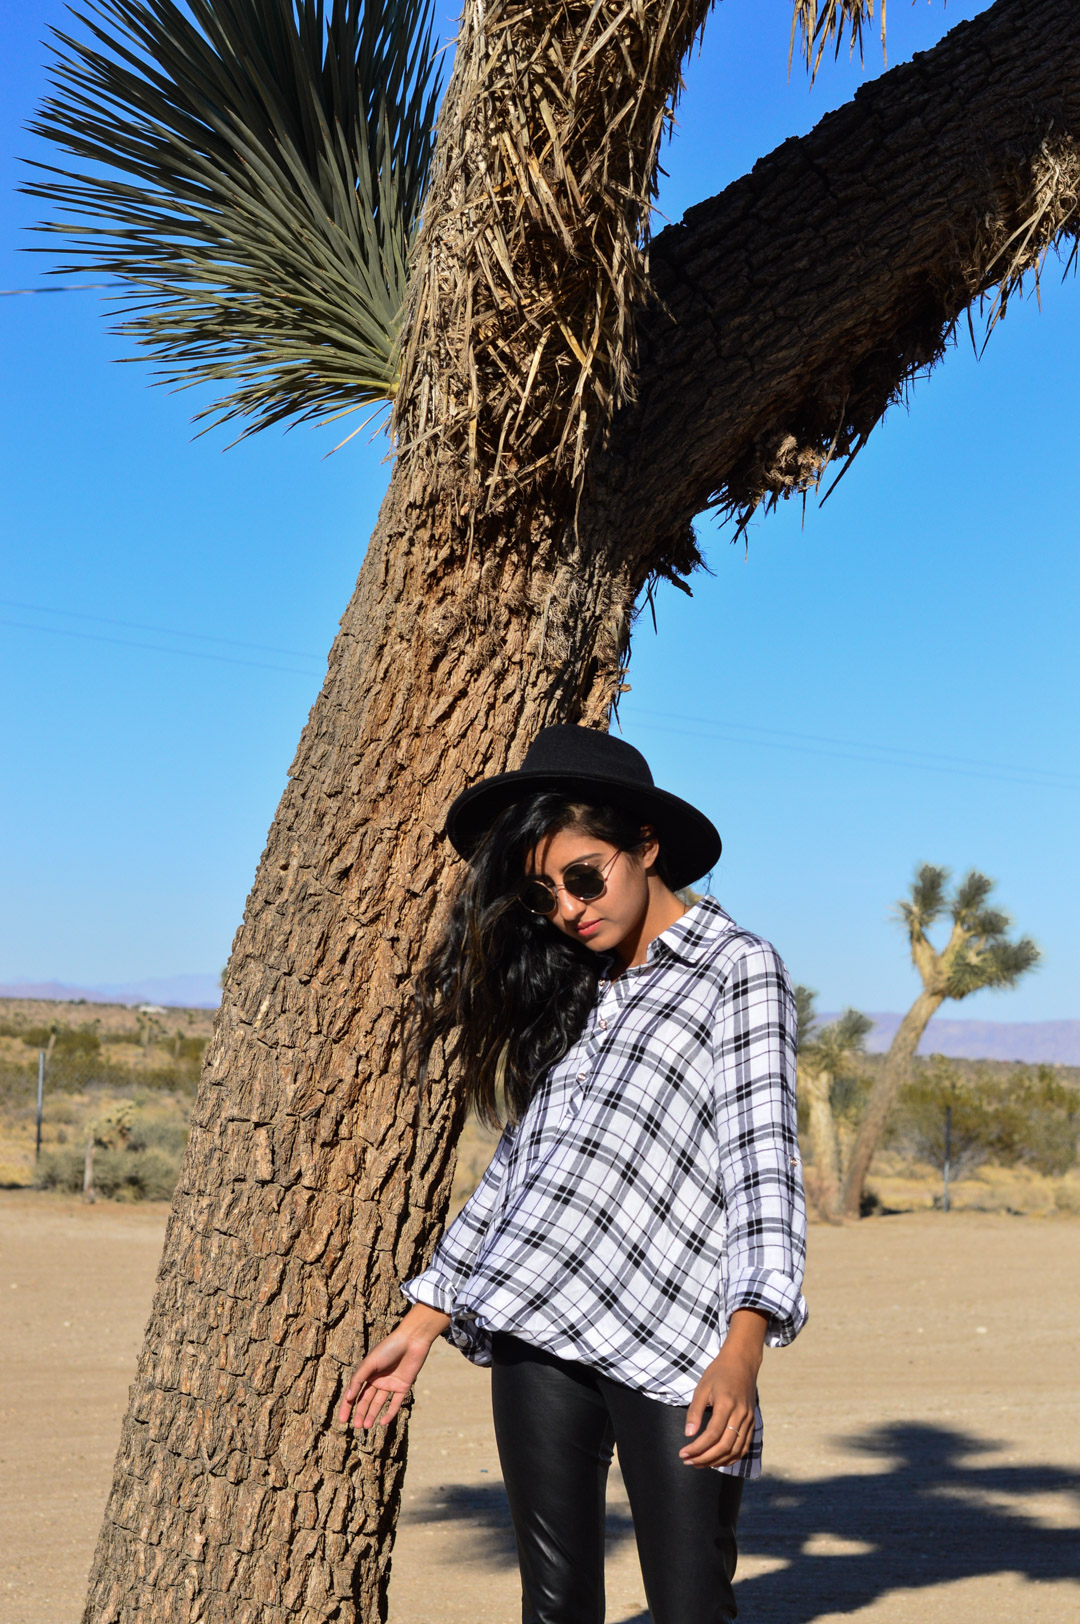 joshua-tree-national-park-california-travel-blogger-outfit 7